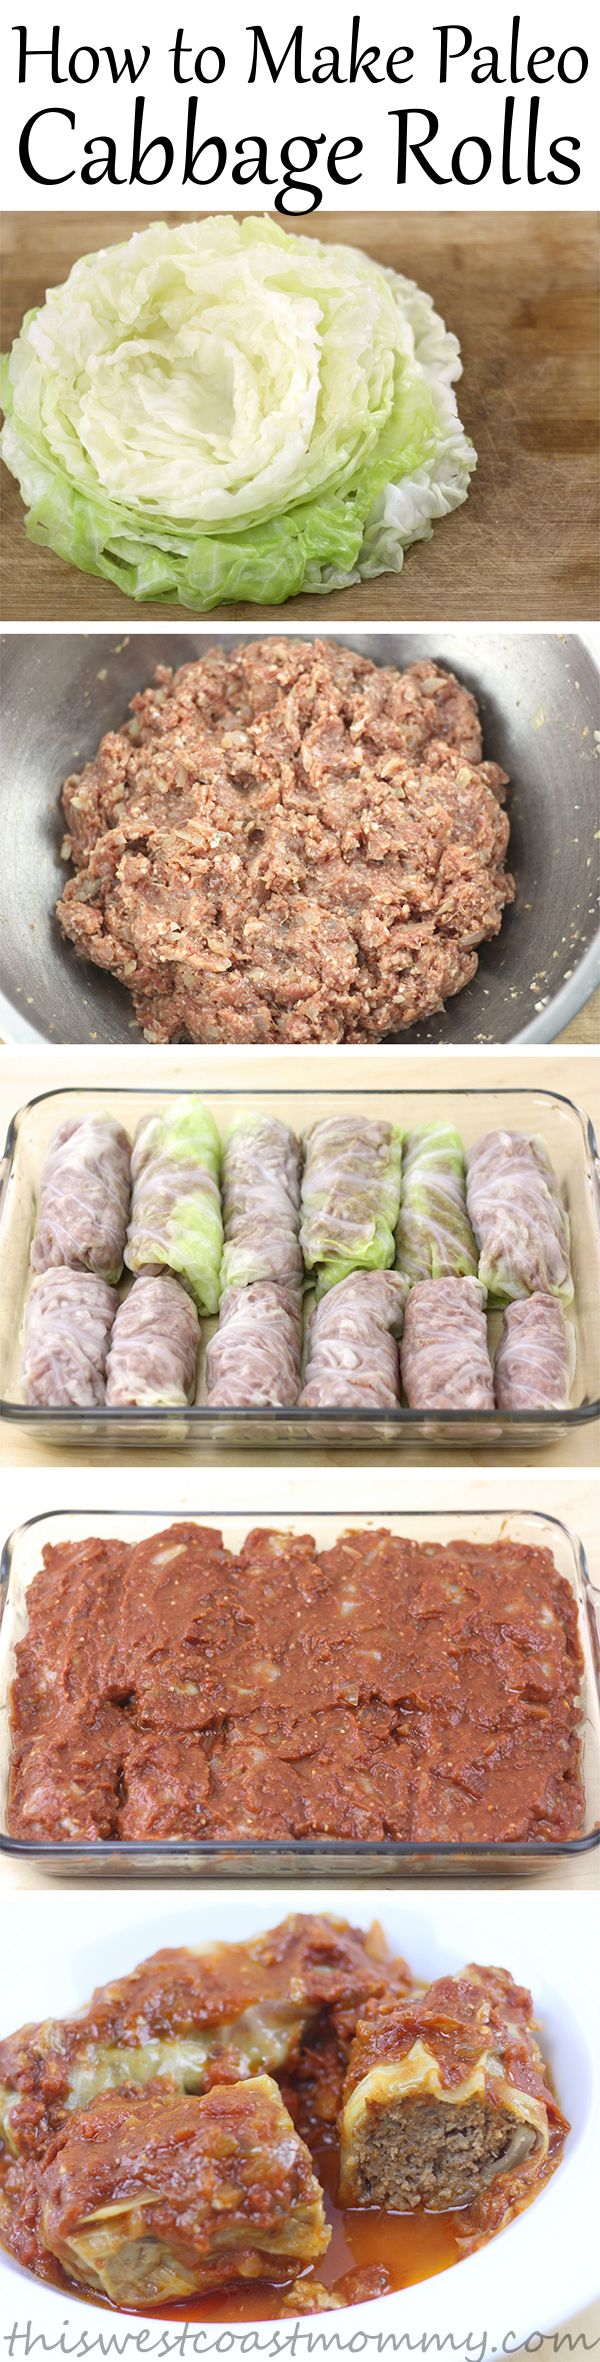 Cabbage rolls are such a comfort food. These paleo cabbage rolls take a while to make, but they're so worth it! Gluten-free, grain-free, and Whole30 recipe.